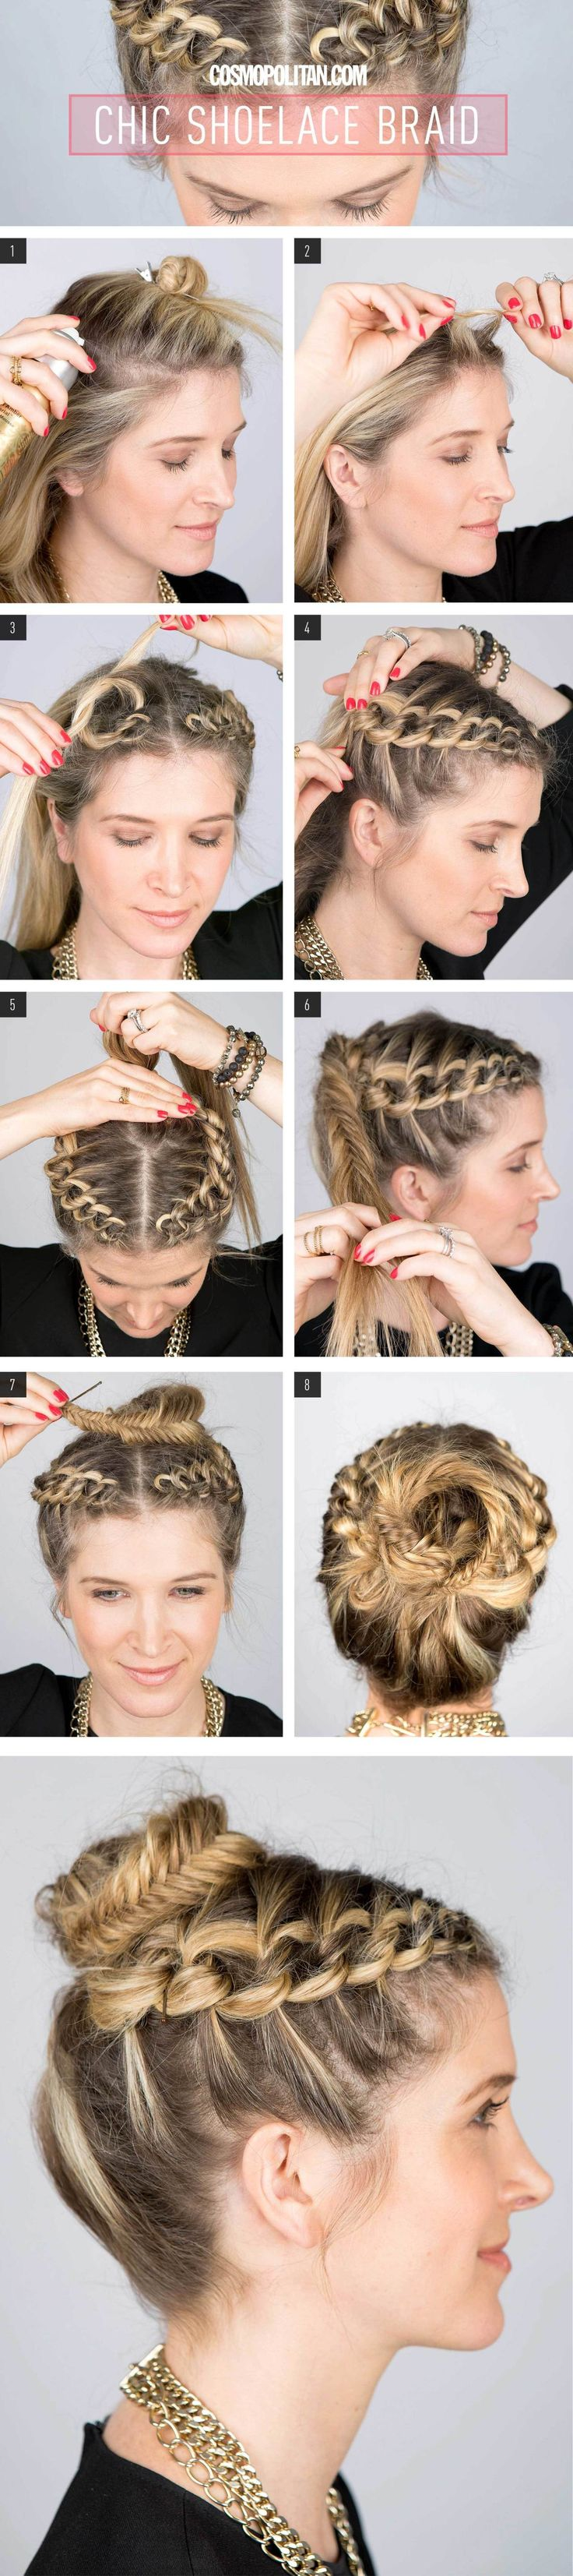 HOW TO DO A SHOELACE BRAID: With this easy tutorial created by hairstylist Cash Lawless and a few tools, you'll be able to create this easy and stylish braid in no time! This hairstyle is perfect for weddings, a night out with the squad, or to wear to work. Grab some volumizing mousse, hair elastics, and bobby pins and follow these instructions! Click through to find the full tutorial and easy hair tips!